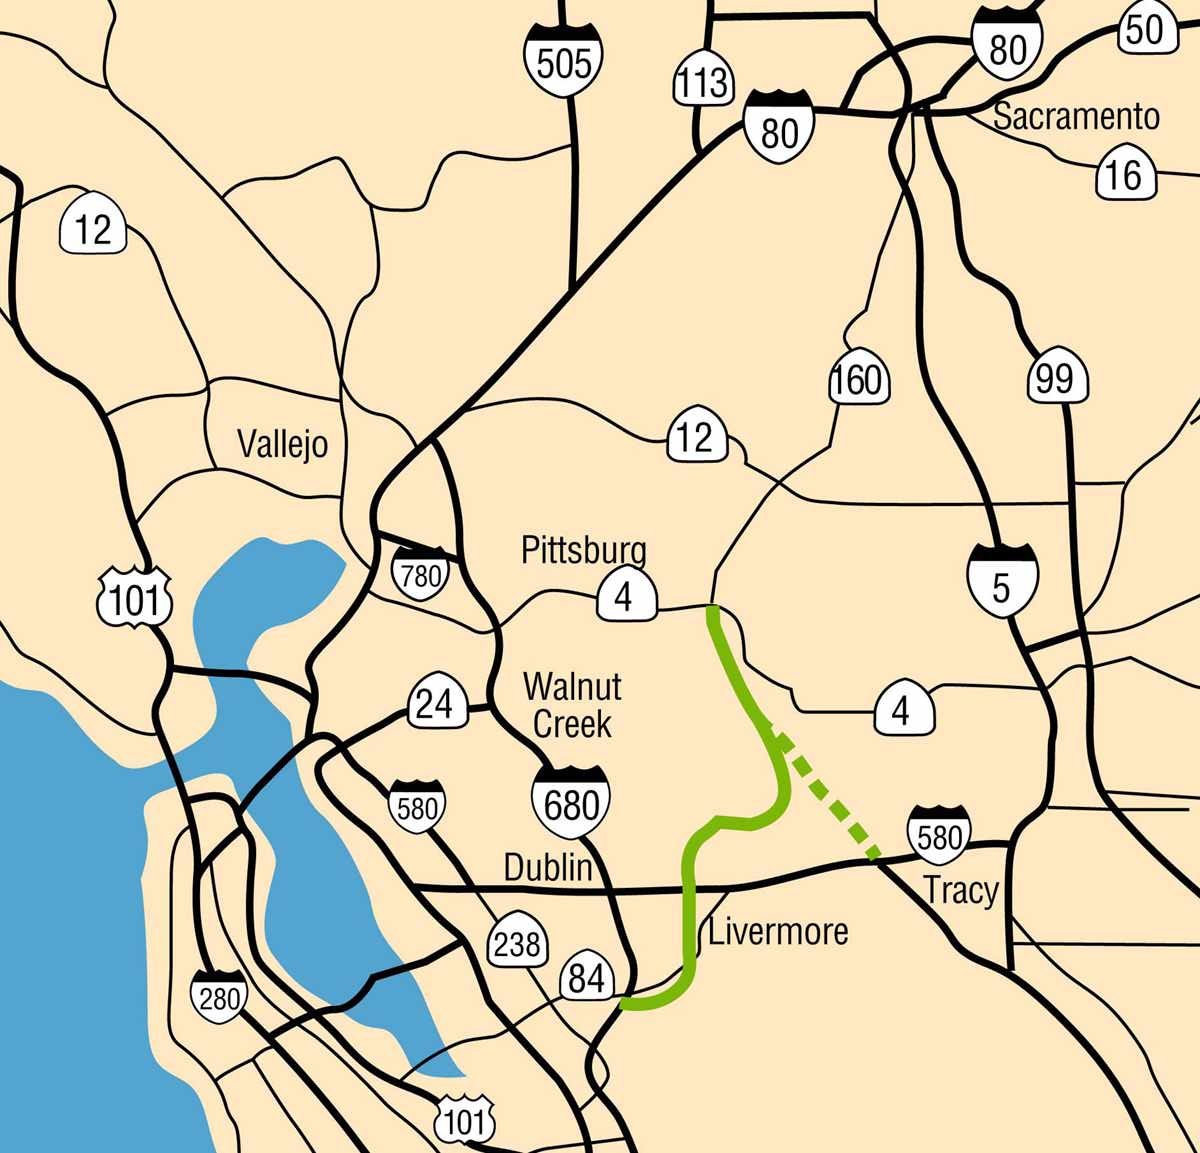 Mid-State Tollway - California Toll Roads Map